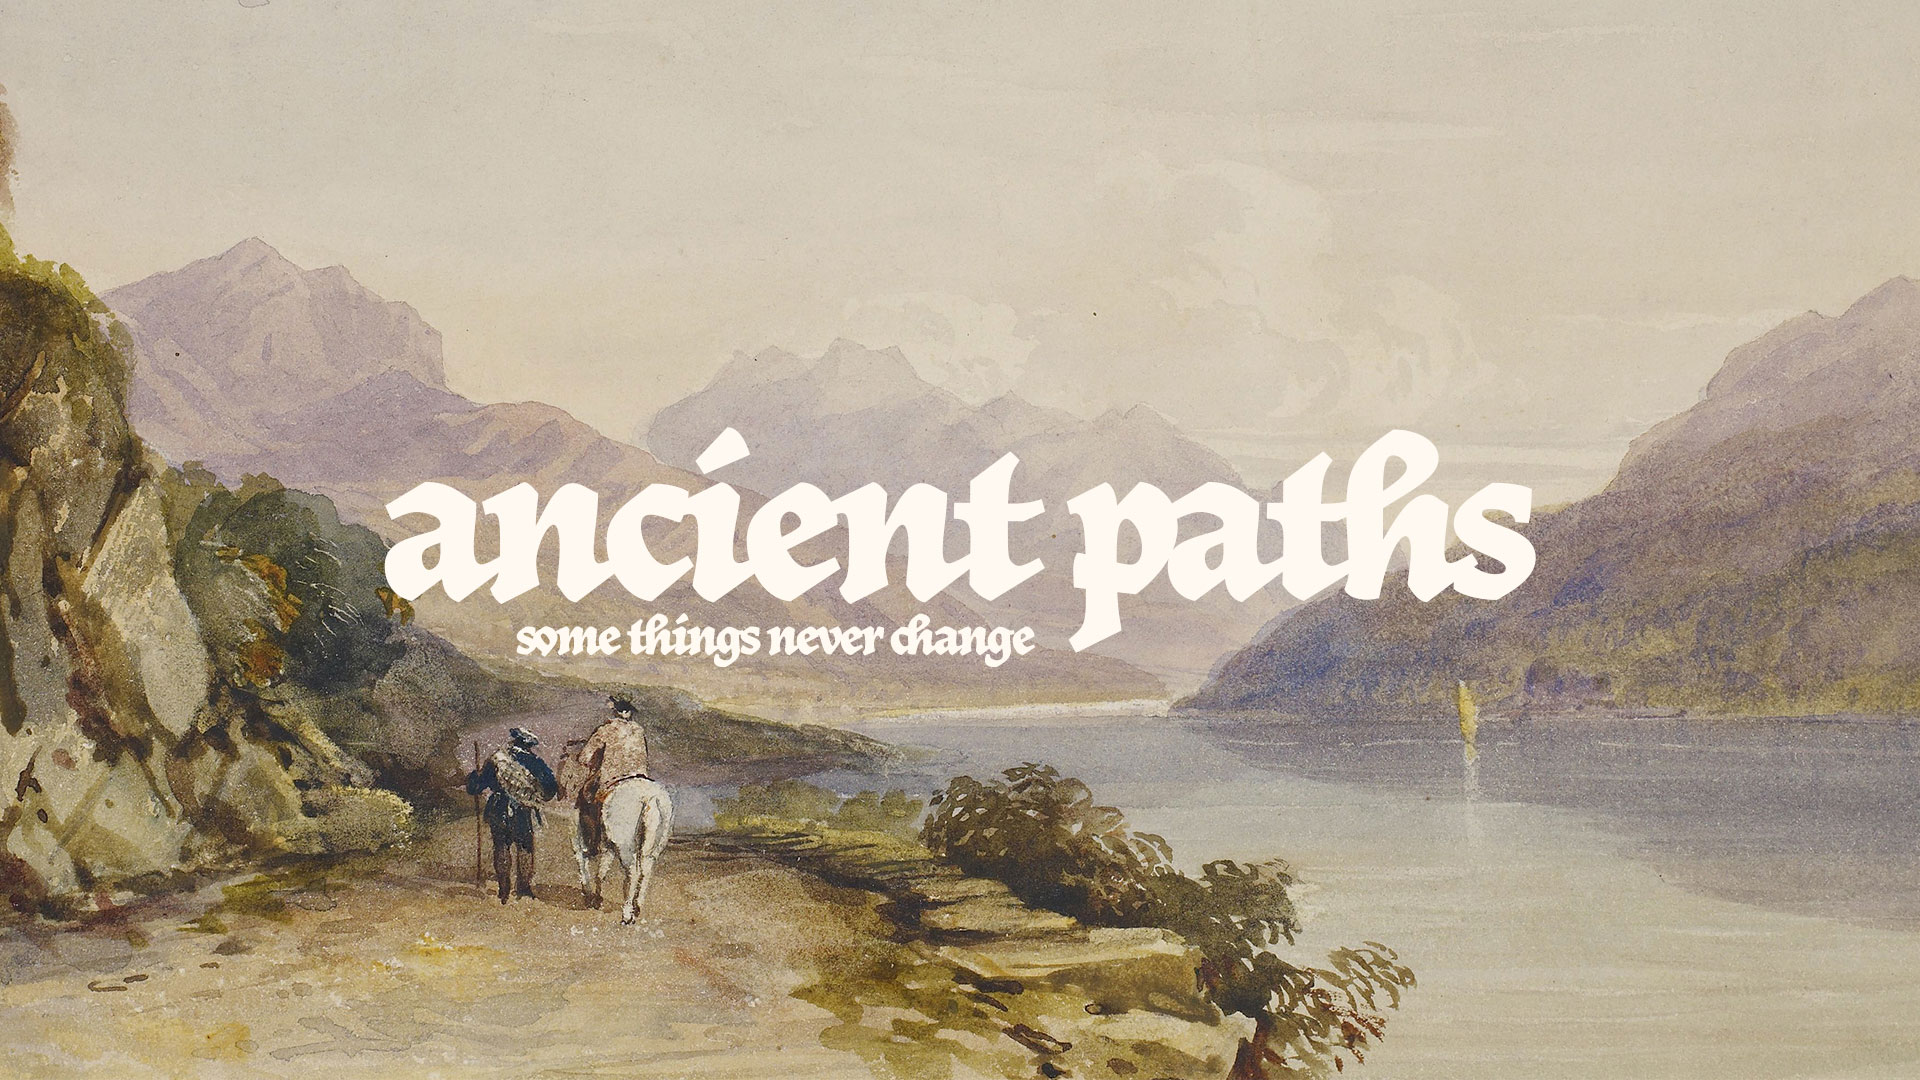 Series: Ancient Paths, Some Things Never Change